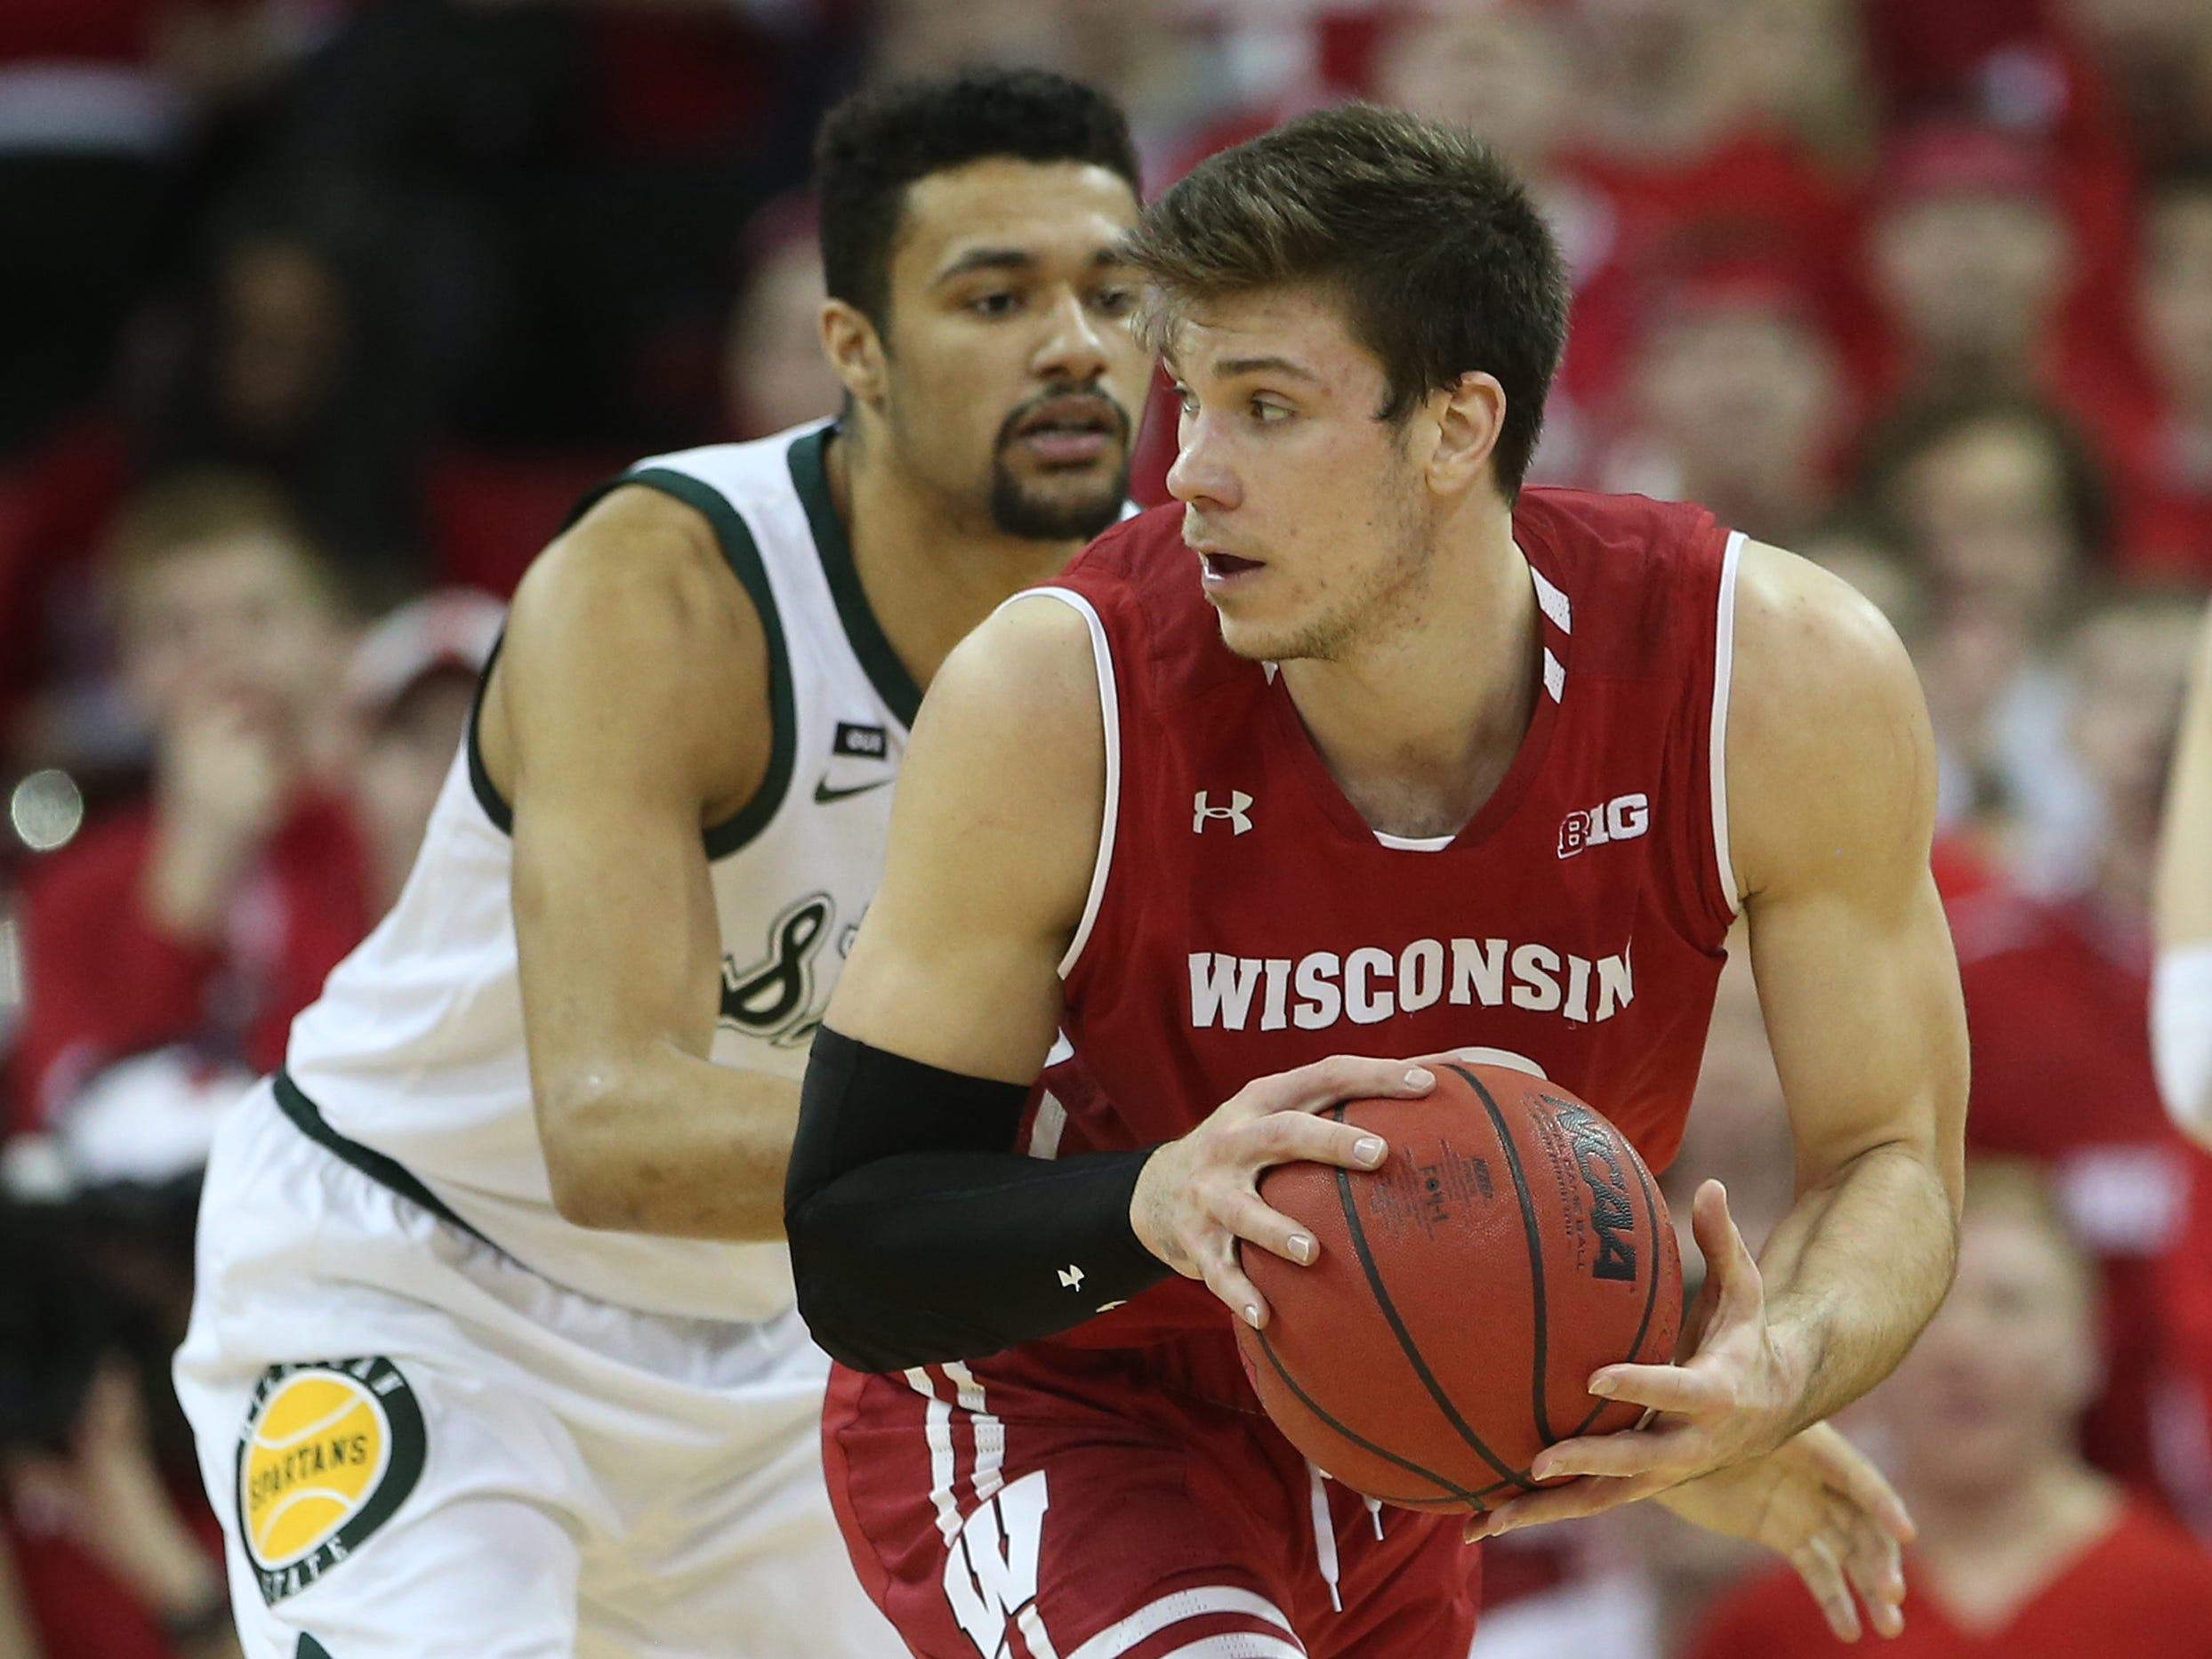 Wisconsin Badgers forward Ethan Happ controls the ball as Michigan State Spartans forward Kenny Goins defends during the first half at the Kohl Center, Feb. 12, 2019.